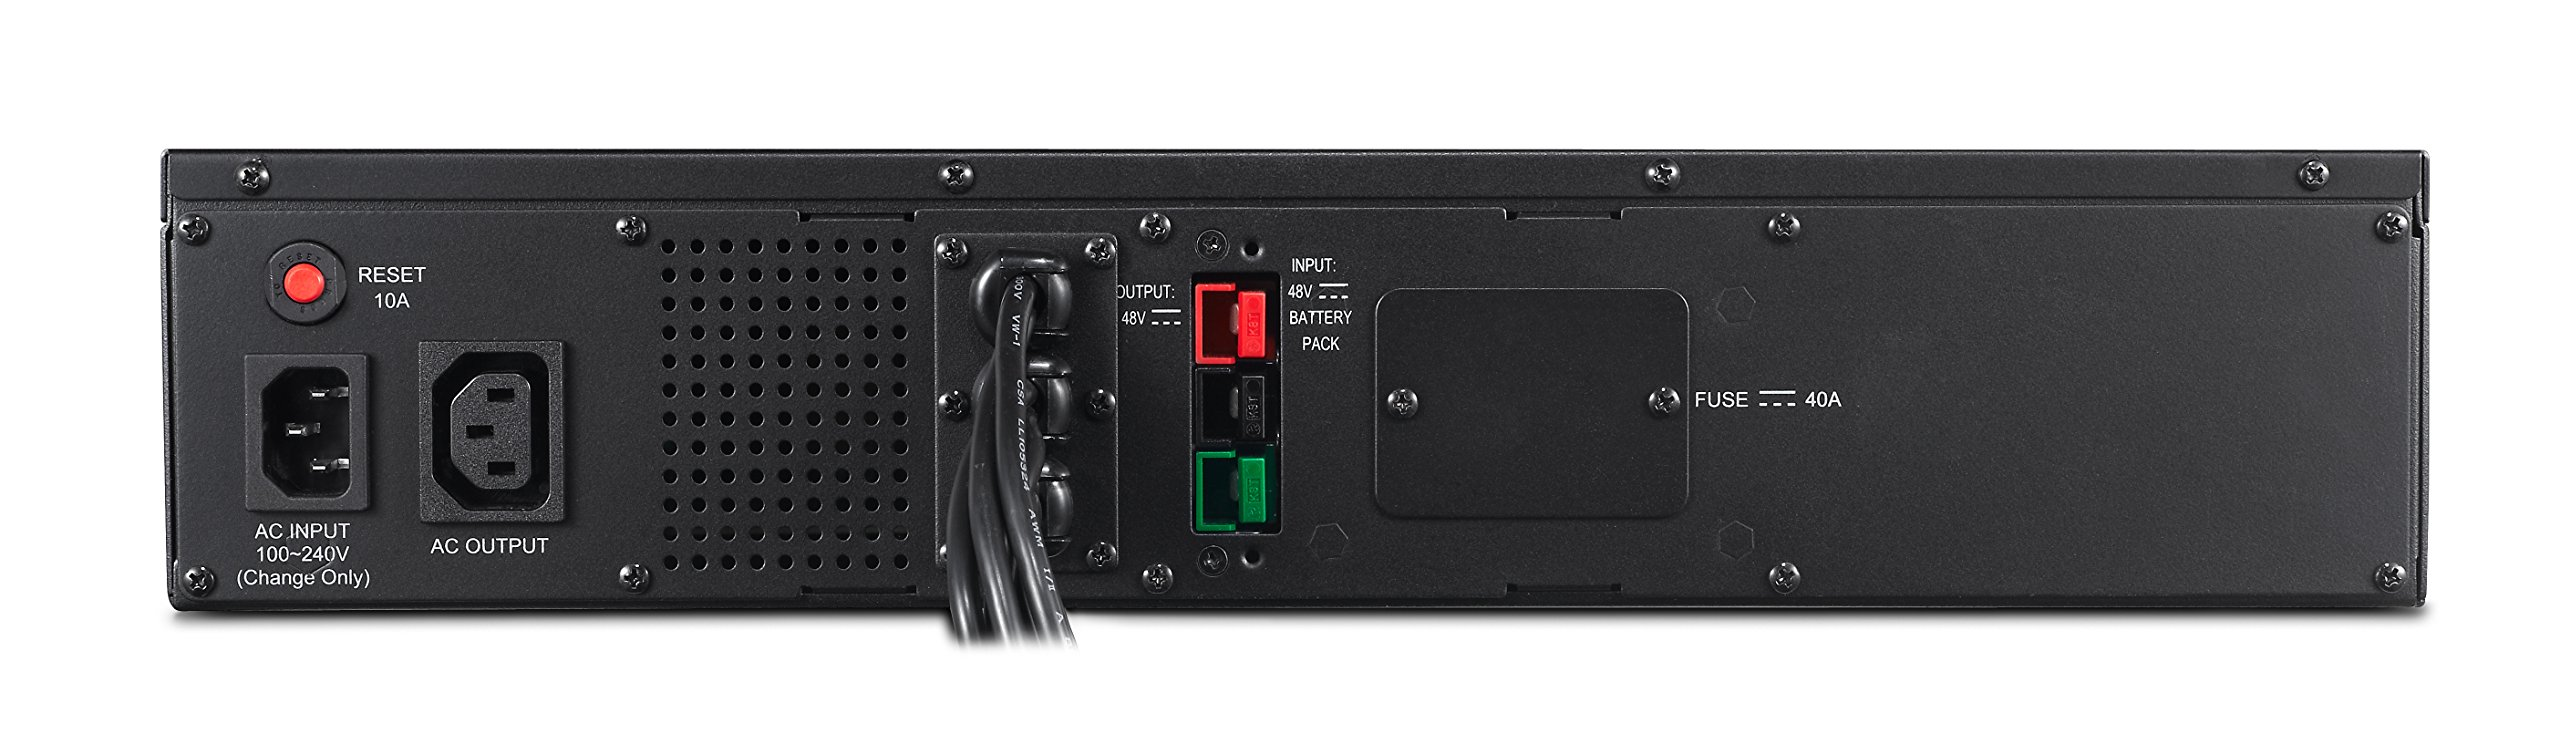 CyberPower BP48V75ART2U Extended Battery Module, 48V/45A, 2U Rack/Tower by CyberPower (Image #3)